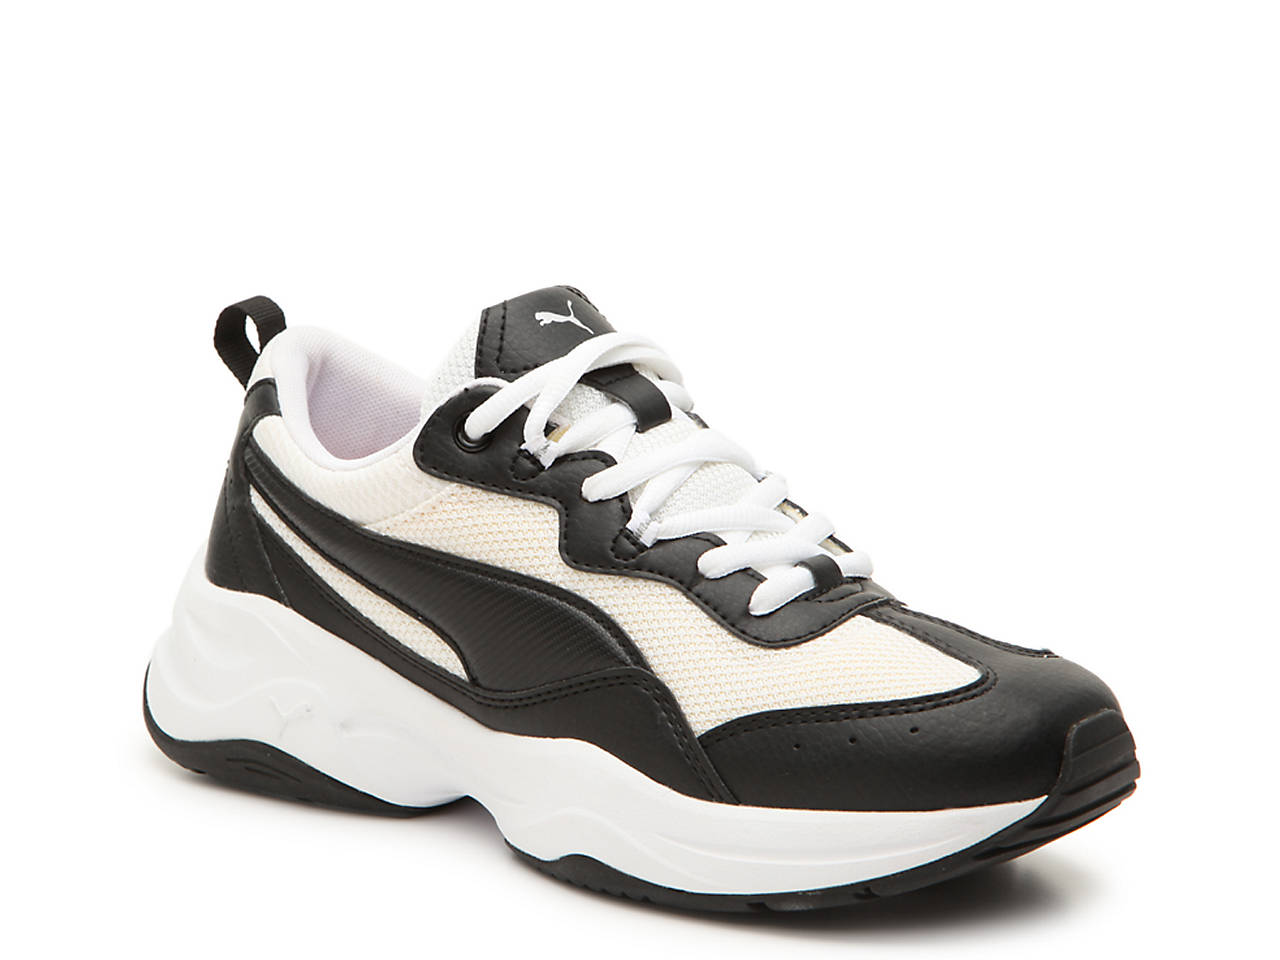 Cilia Women's Sneakers